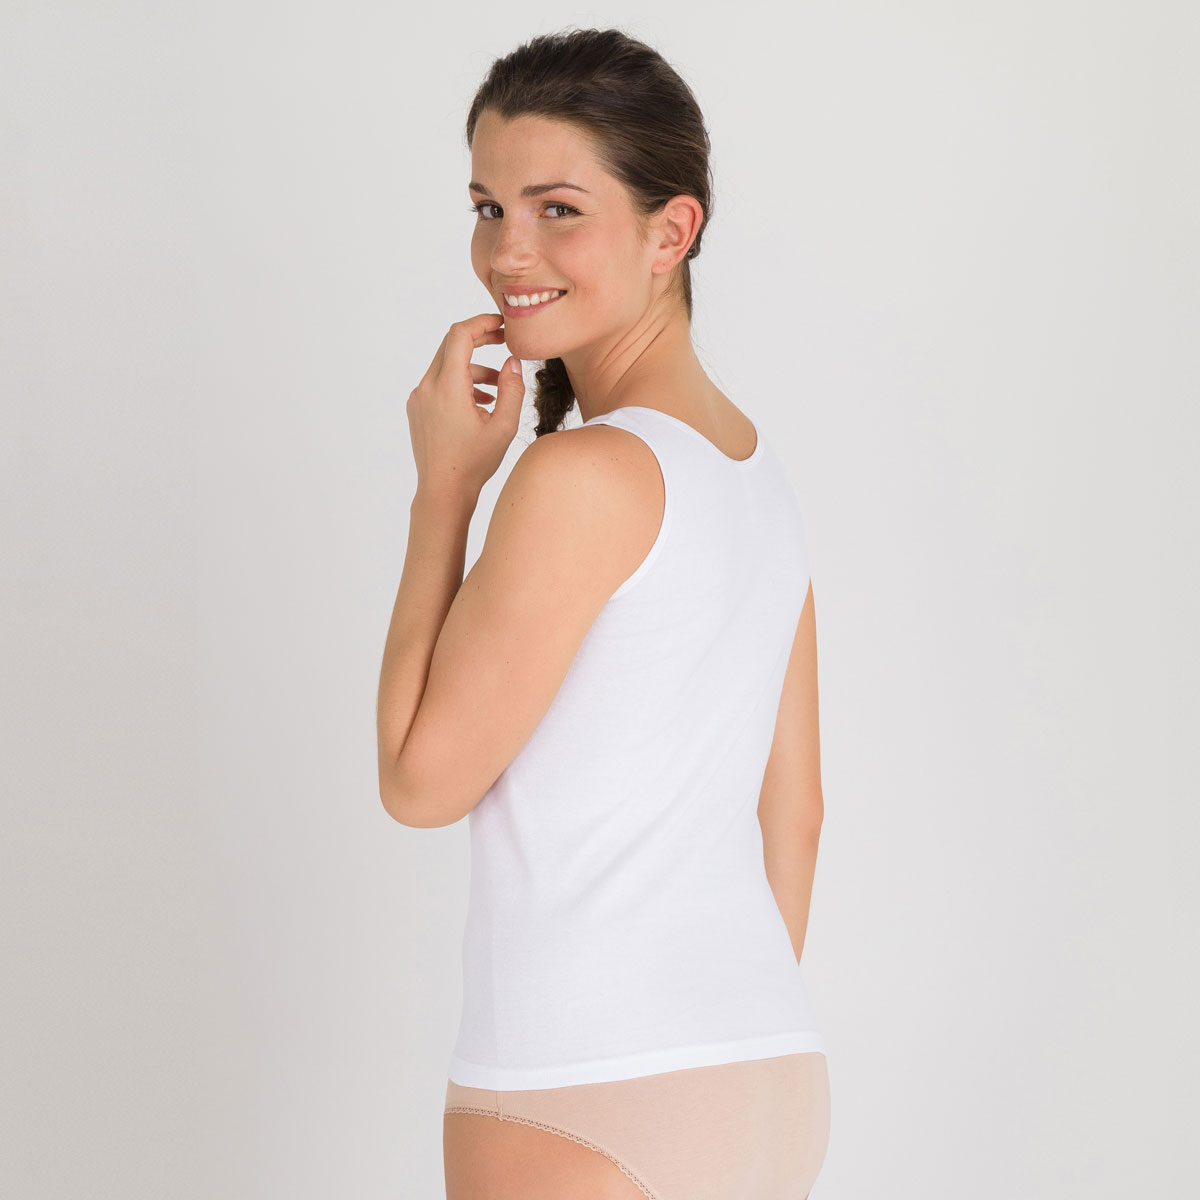 Tank top in White - Cotton Feminine-PLAYTEX